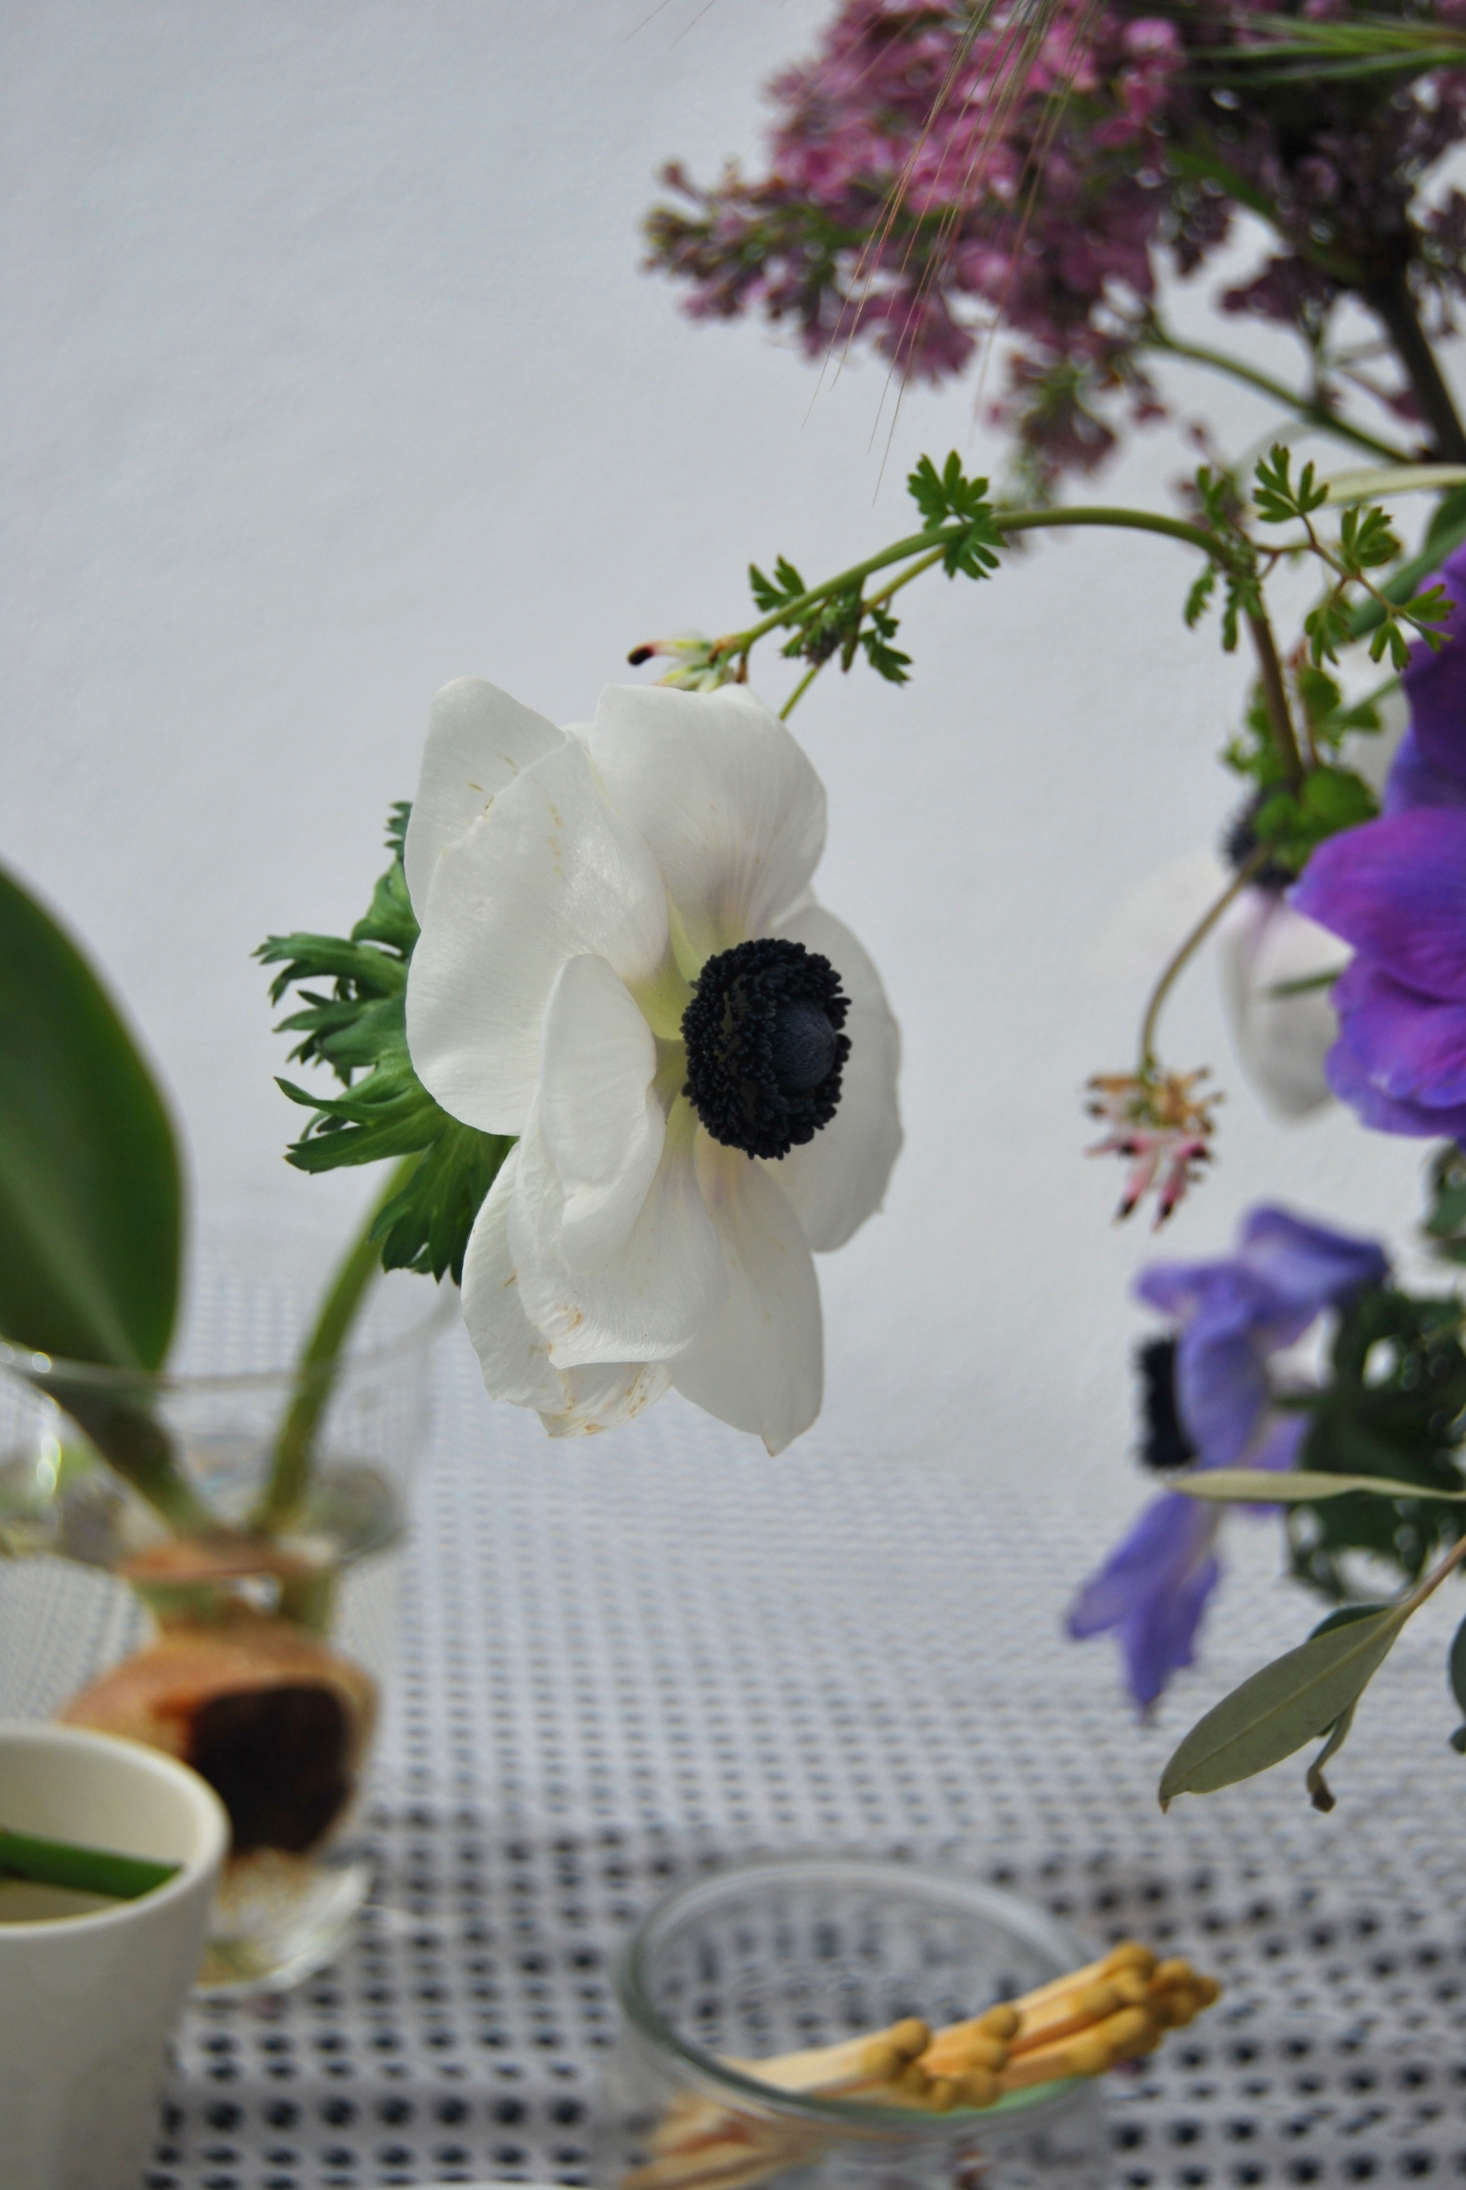 Anemones show their length and work as a focal flower in my Mediterranean-style spring arrangement.